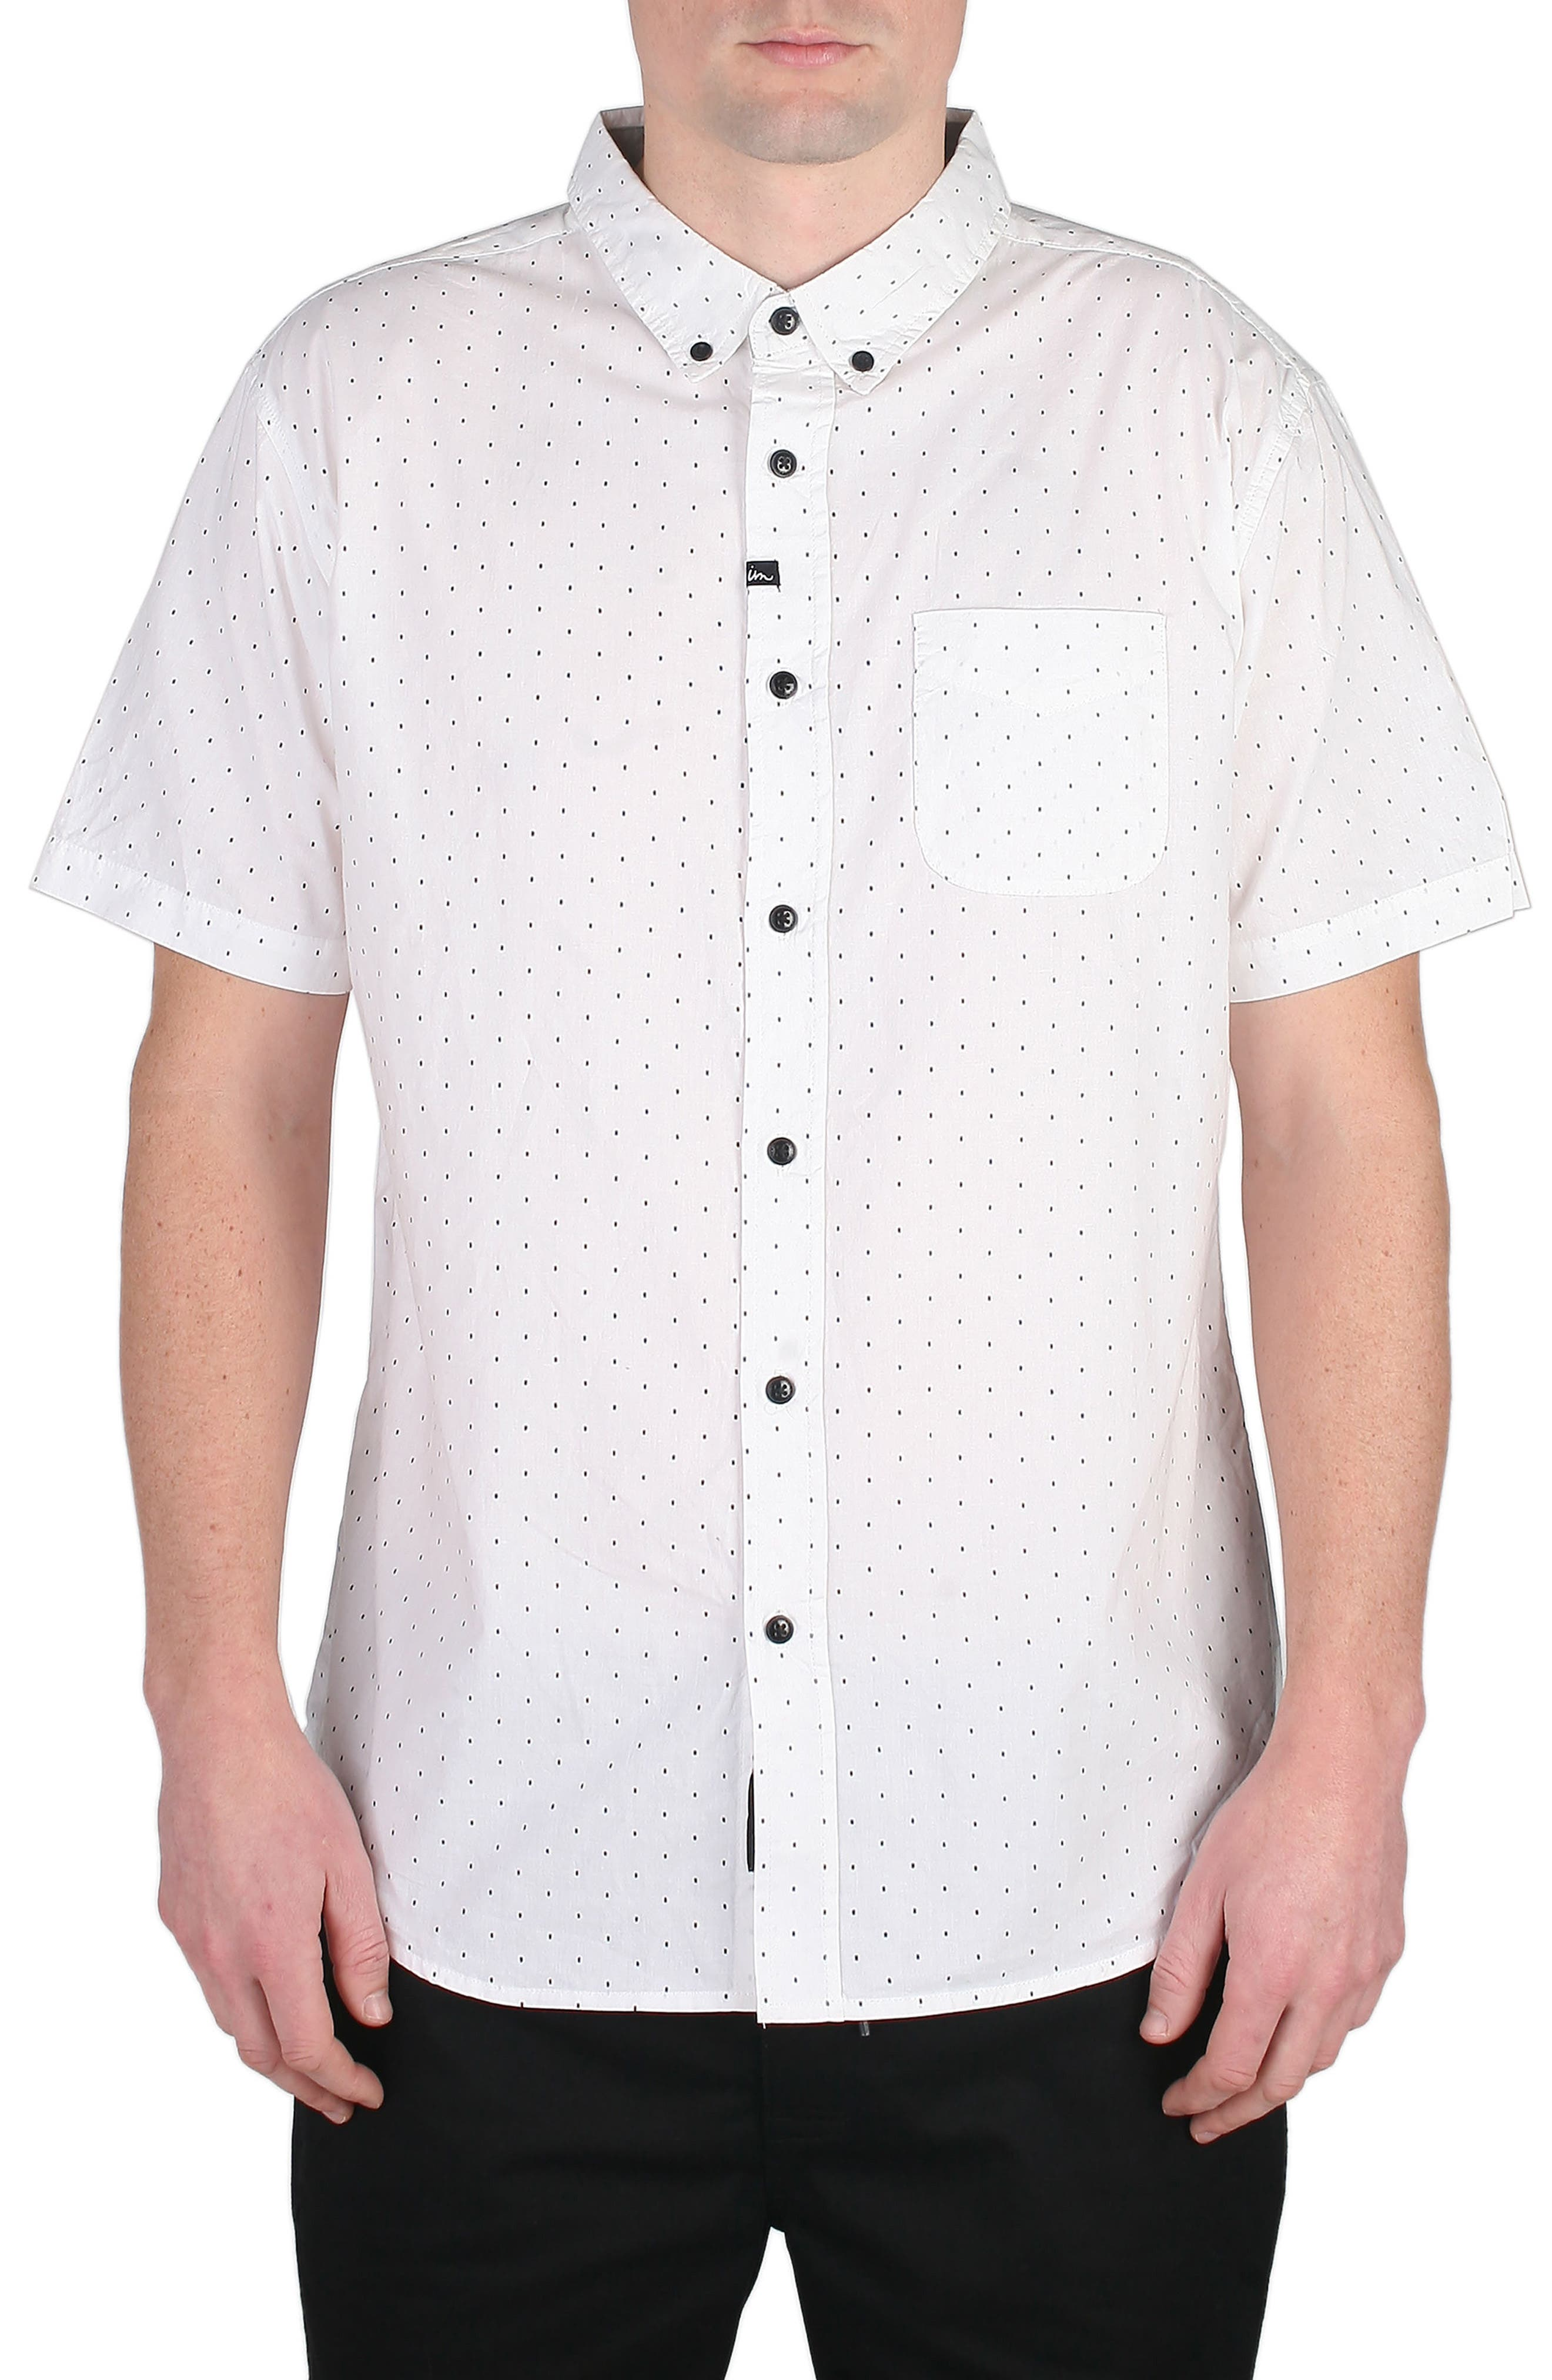 Alternate Image 1 Selected - Imperial Motion Winston Dot Print Woven Shirt